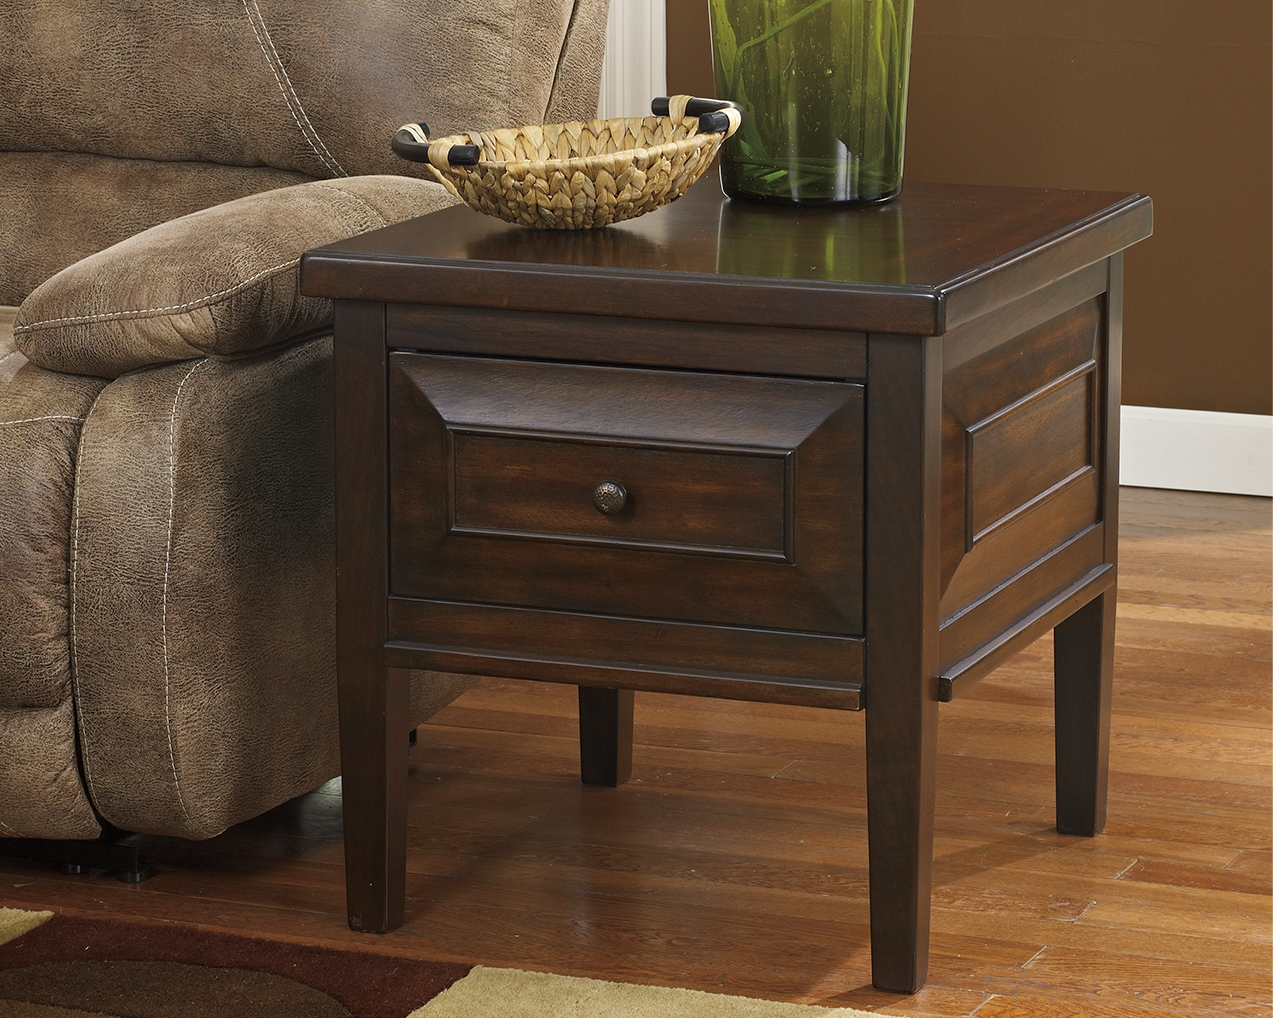 Hindell Park End Table By Signature Design By Ashley T695 2 Pierce Furniture Mattress